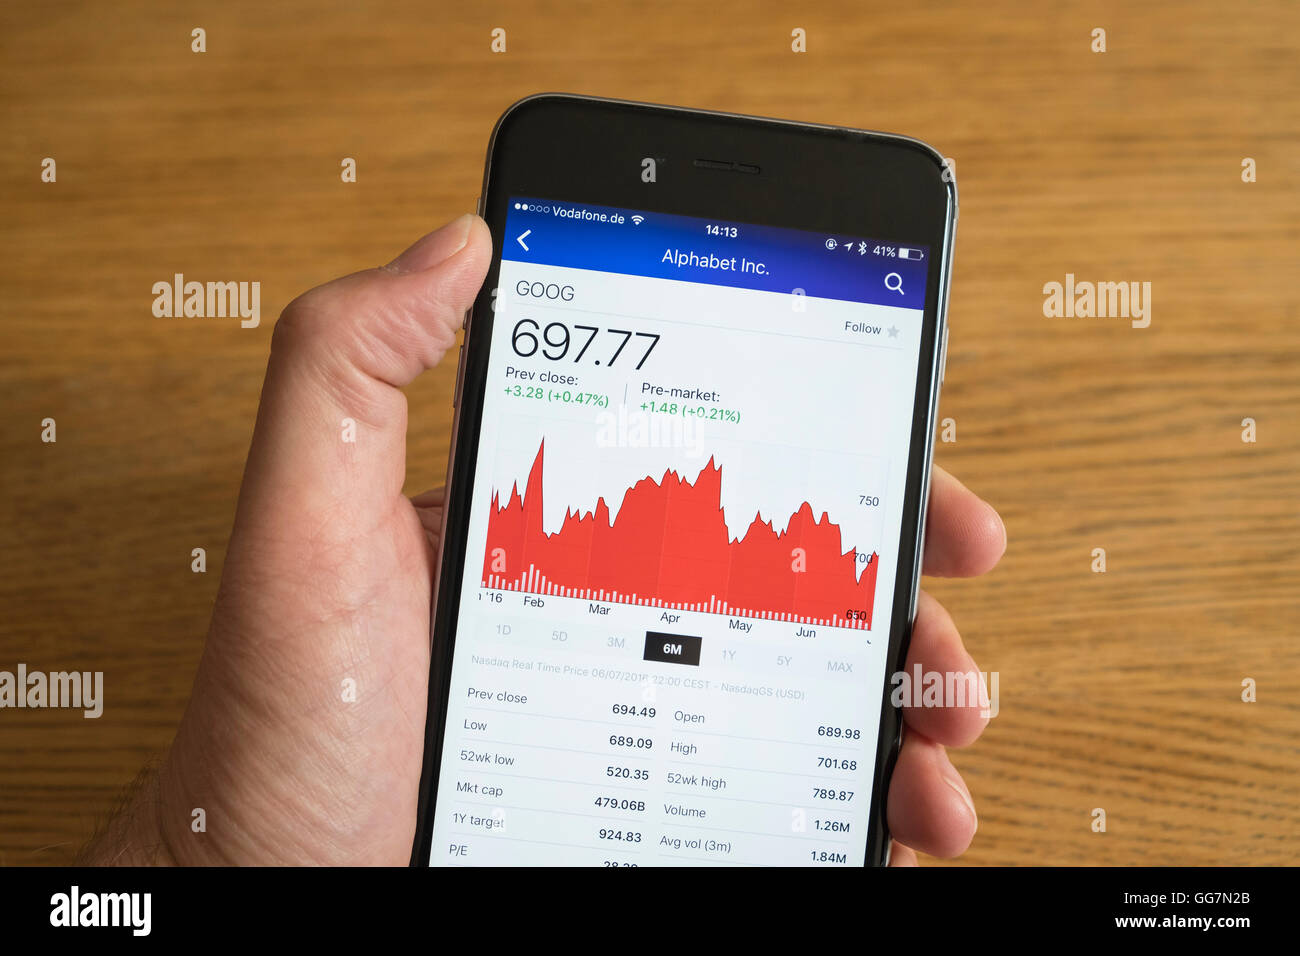 Detail of stock market performance of Google Alphabet company on a smart phone - Stock Image